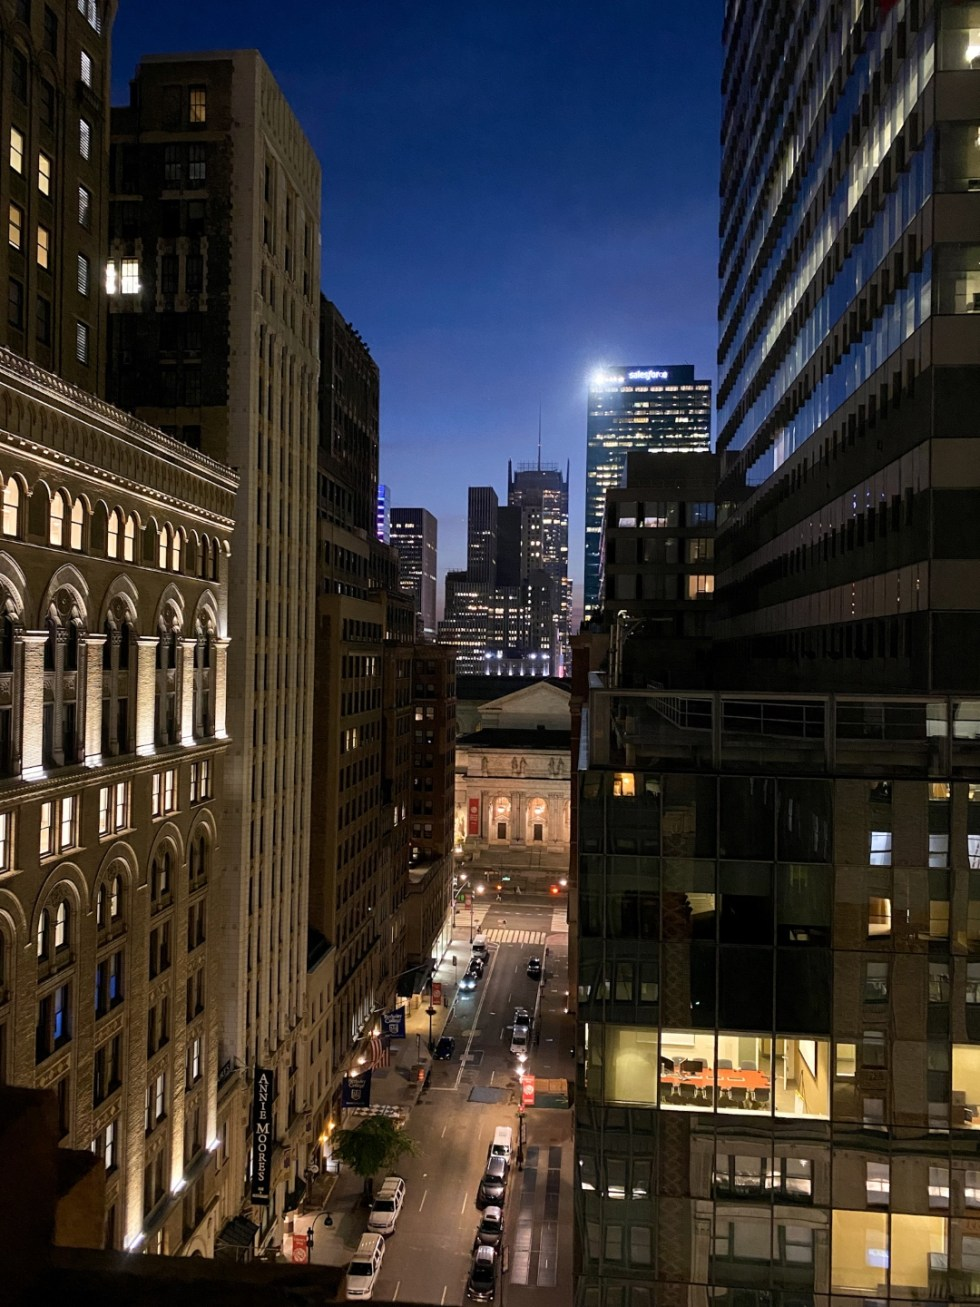 NYC Summer Weekend: Things to Do in NYC in the Summer - I'm Fixin' To - @imfixintoblog   NYC Summer Weekend by popular NC travel blog, I'm Fixin' To: image of New York City.